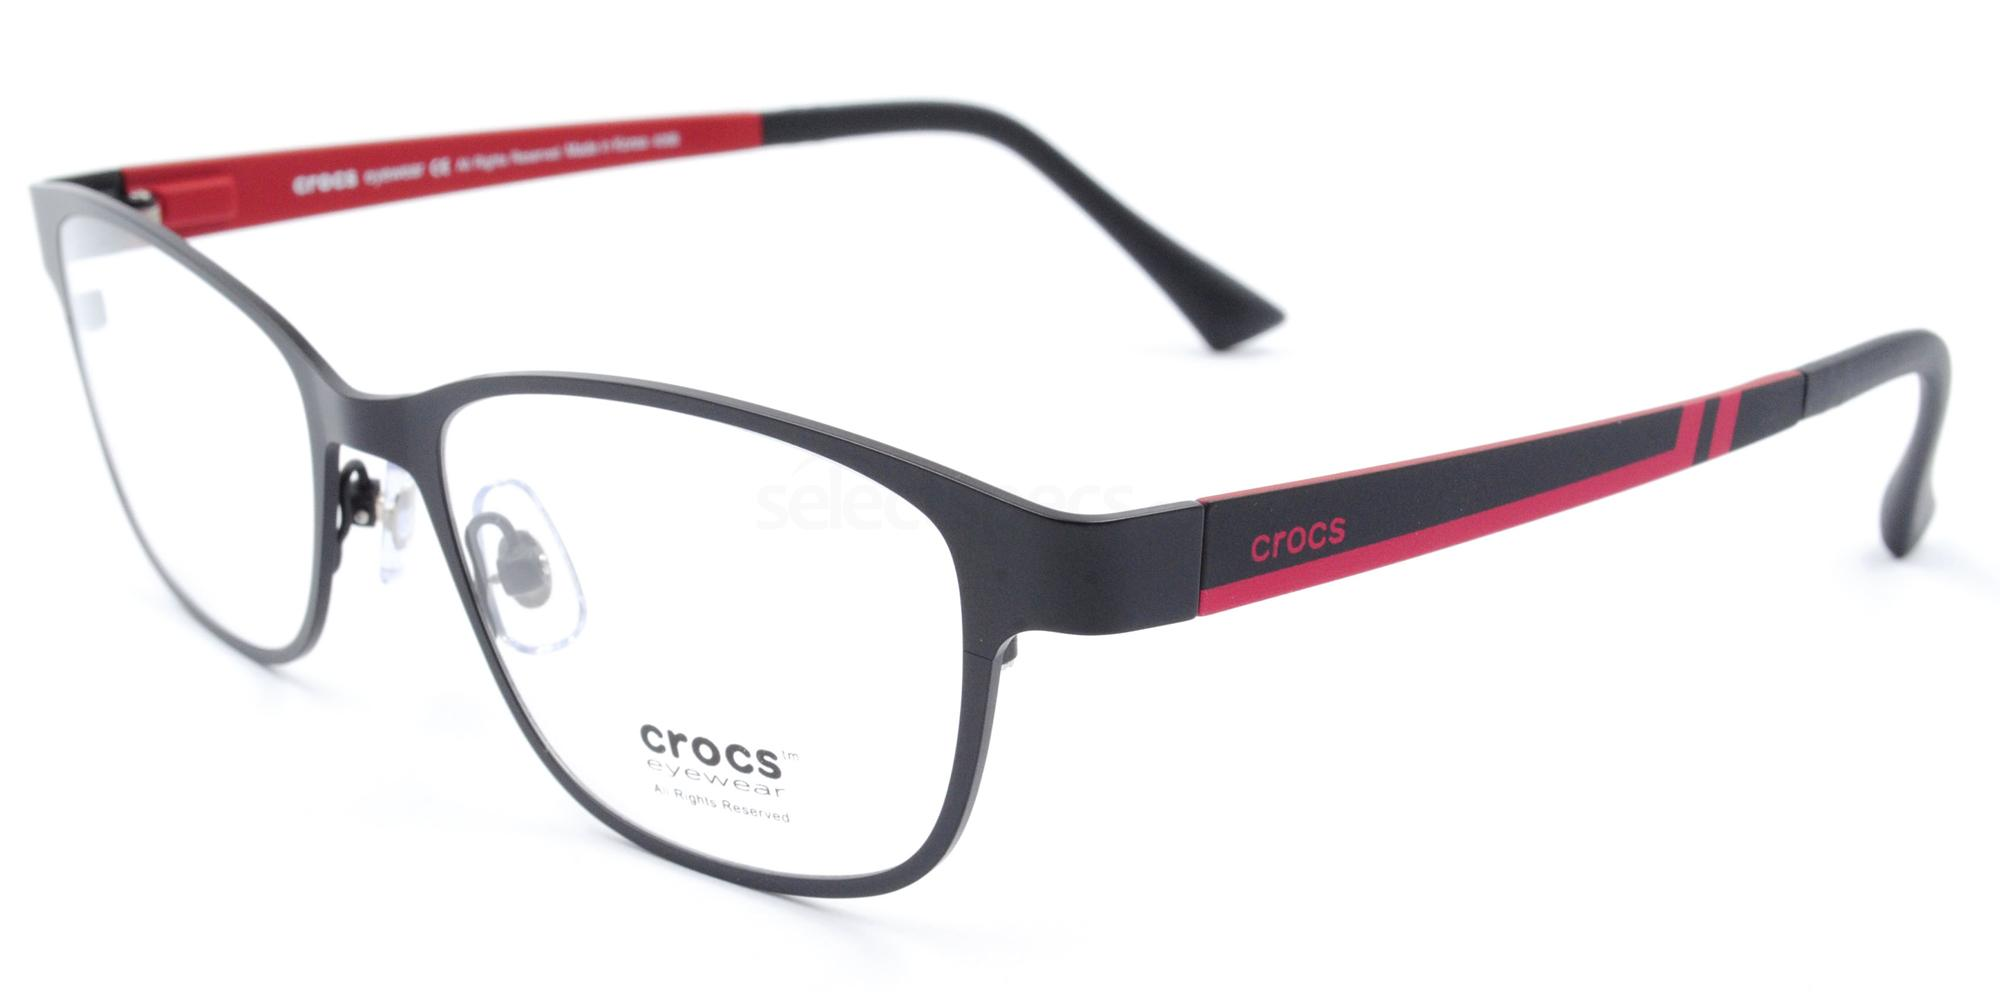 20RD CF625 Glasses, Crocs Eyewear